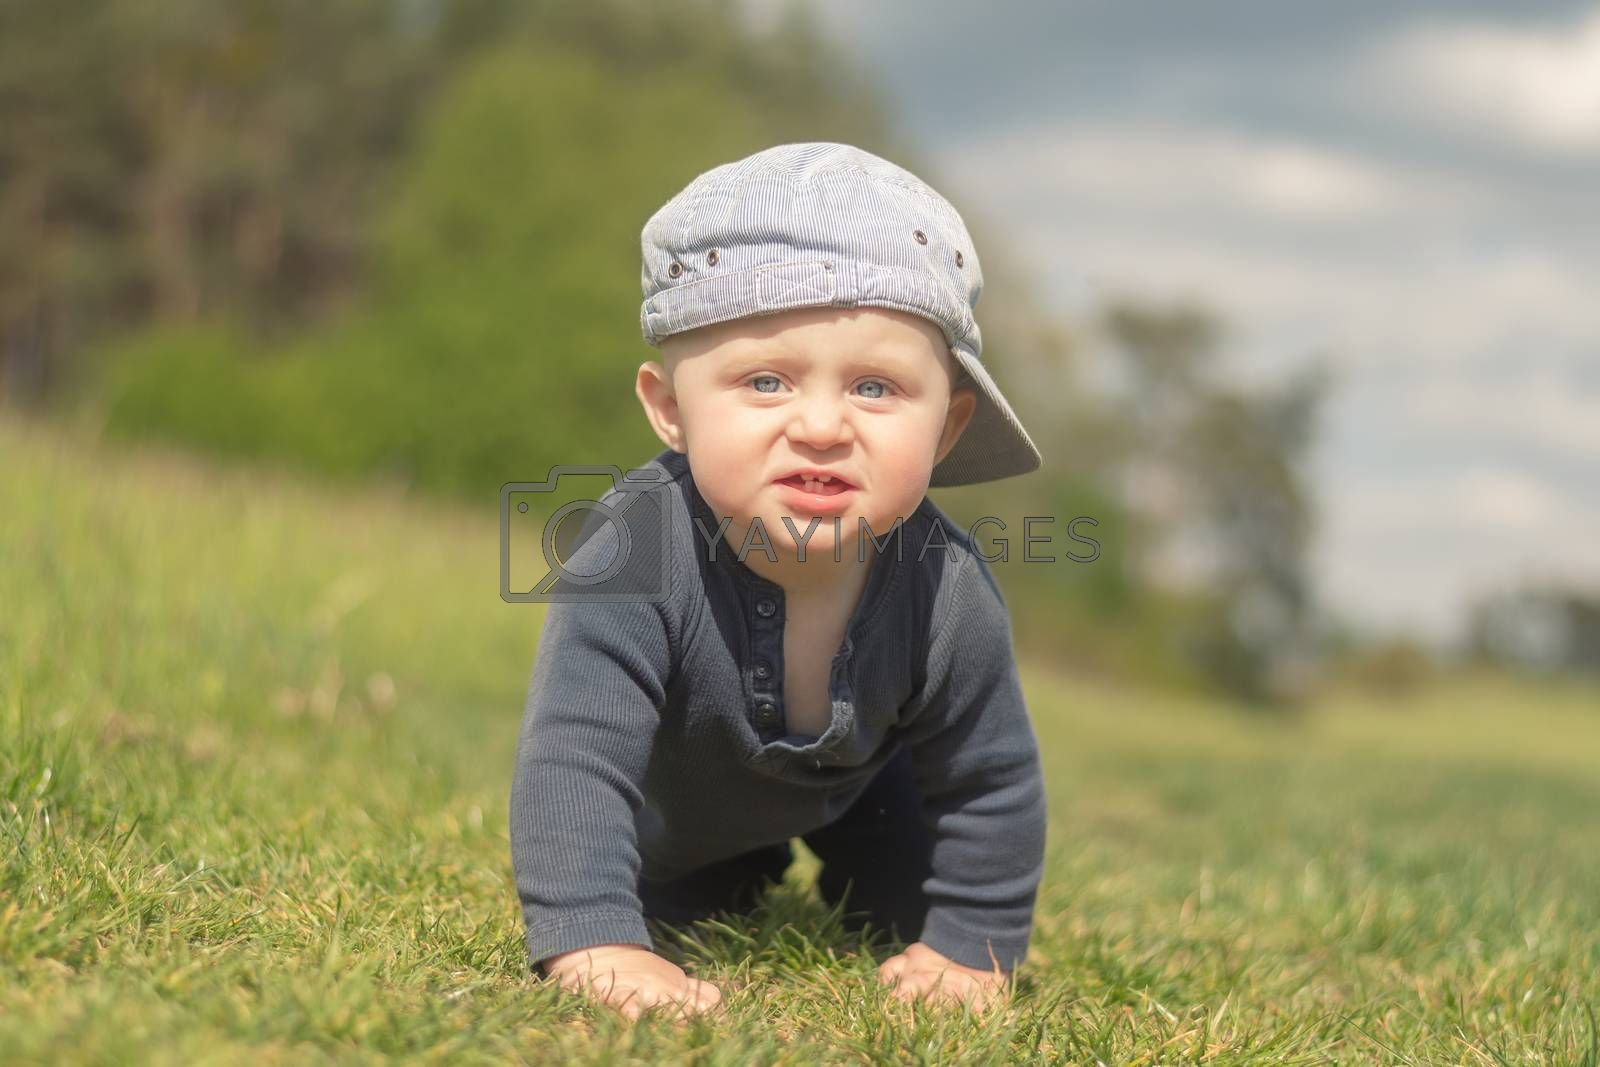 92/5000 An 11-month-old infant in a peaked cap climbs the lawn. Looking into the camera. Blurred background.